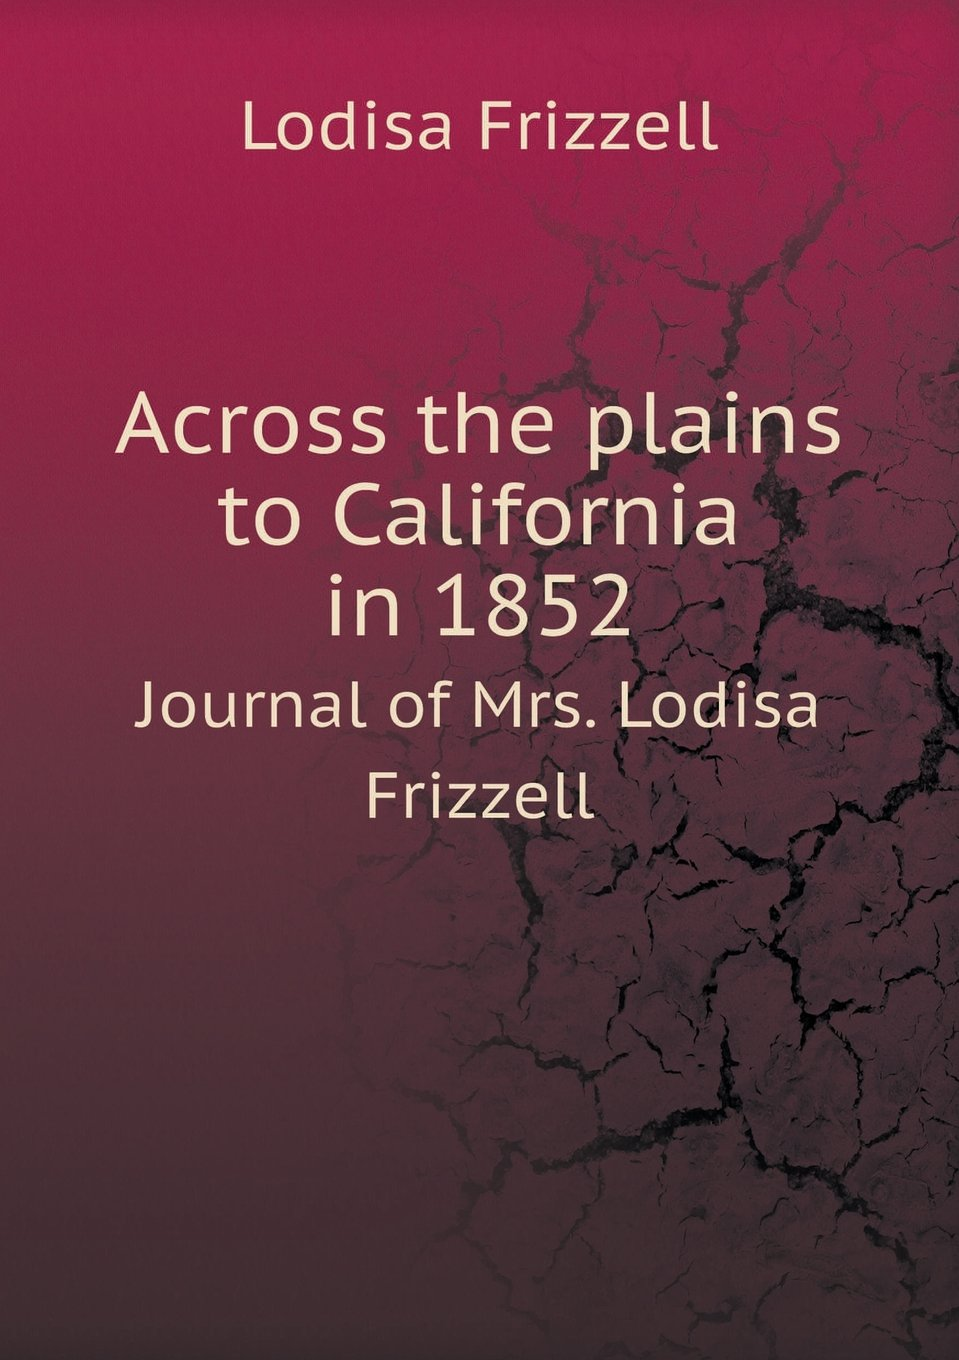 Download Across the plains to California in 1852 Journal of Mrs. Lodisa Frizzell PDF